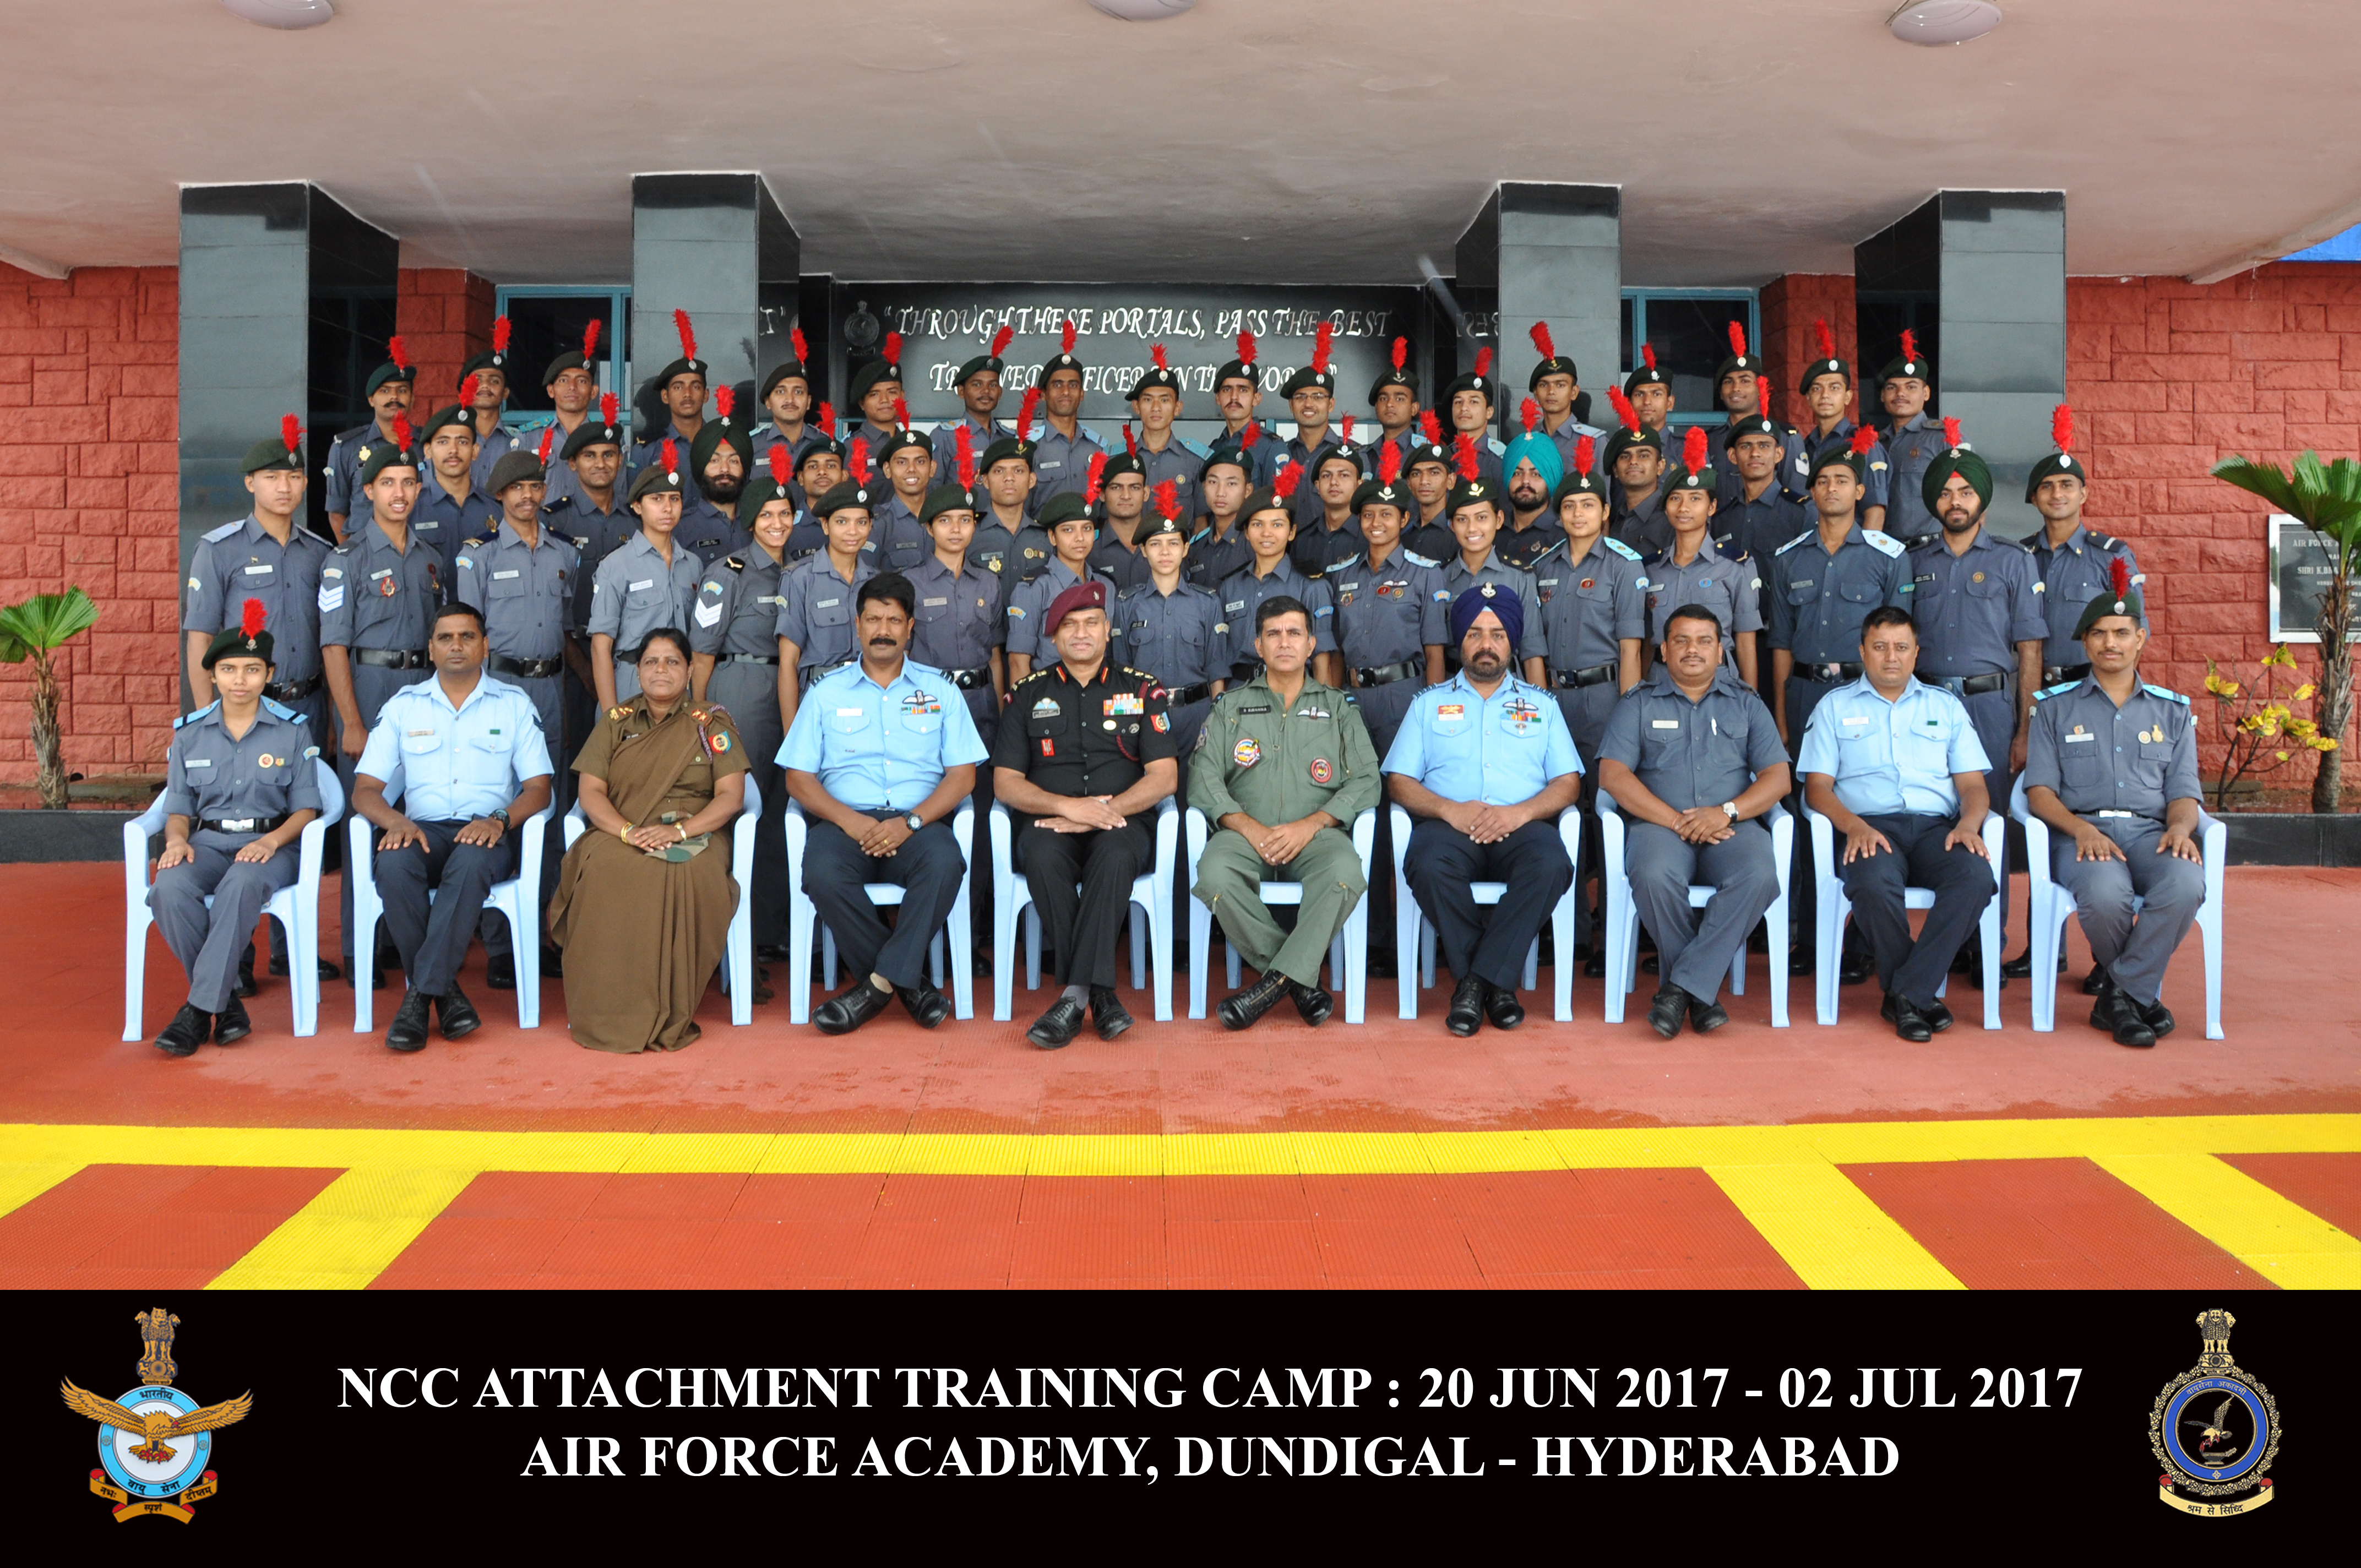 NCC Attachment Training Air Force